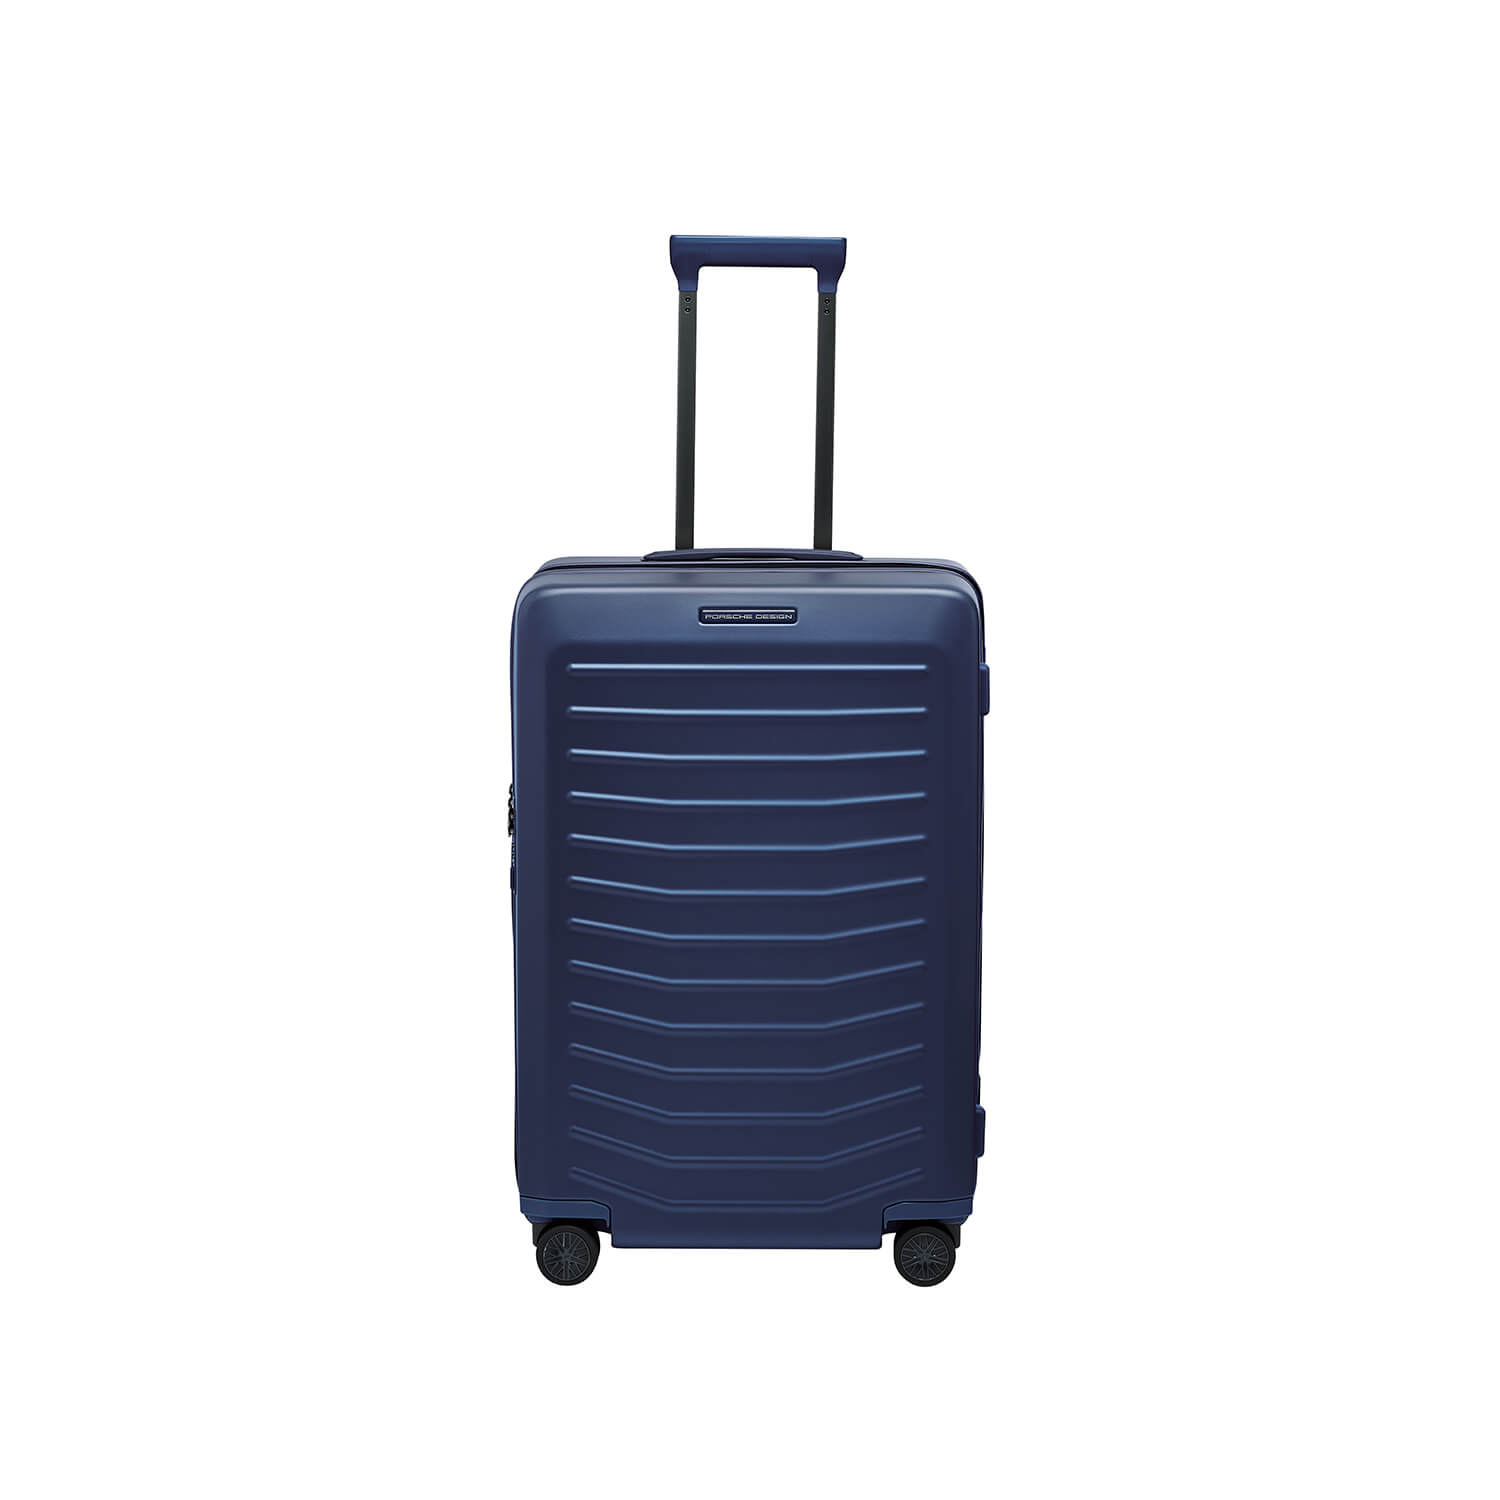 "Porsche Roadster Hardcase Spinner Expandable by Brics (Color: Dark Blue Matte, Size: 27"")"